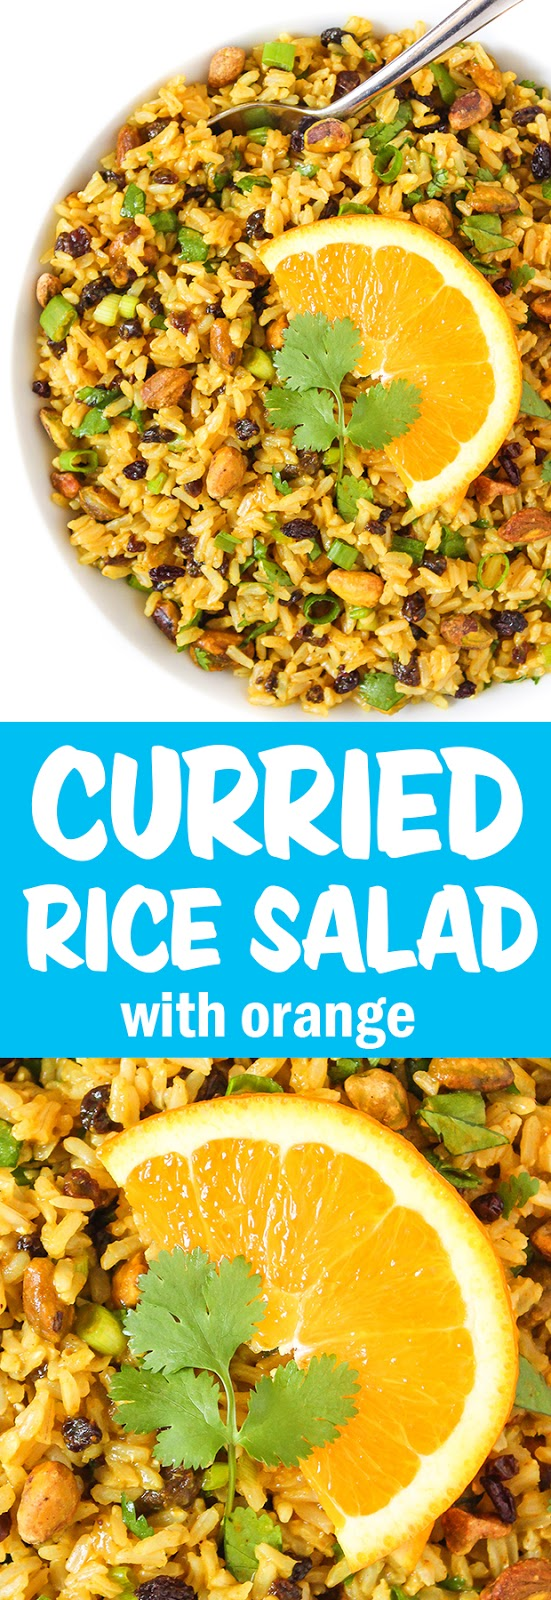 Photo collage of curried orange rice salad